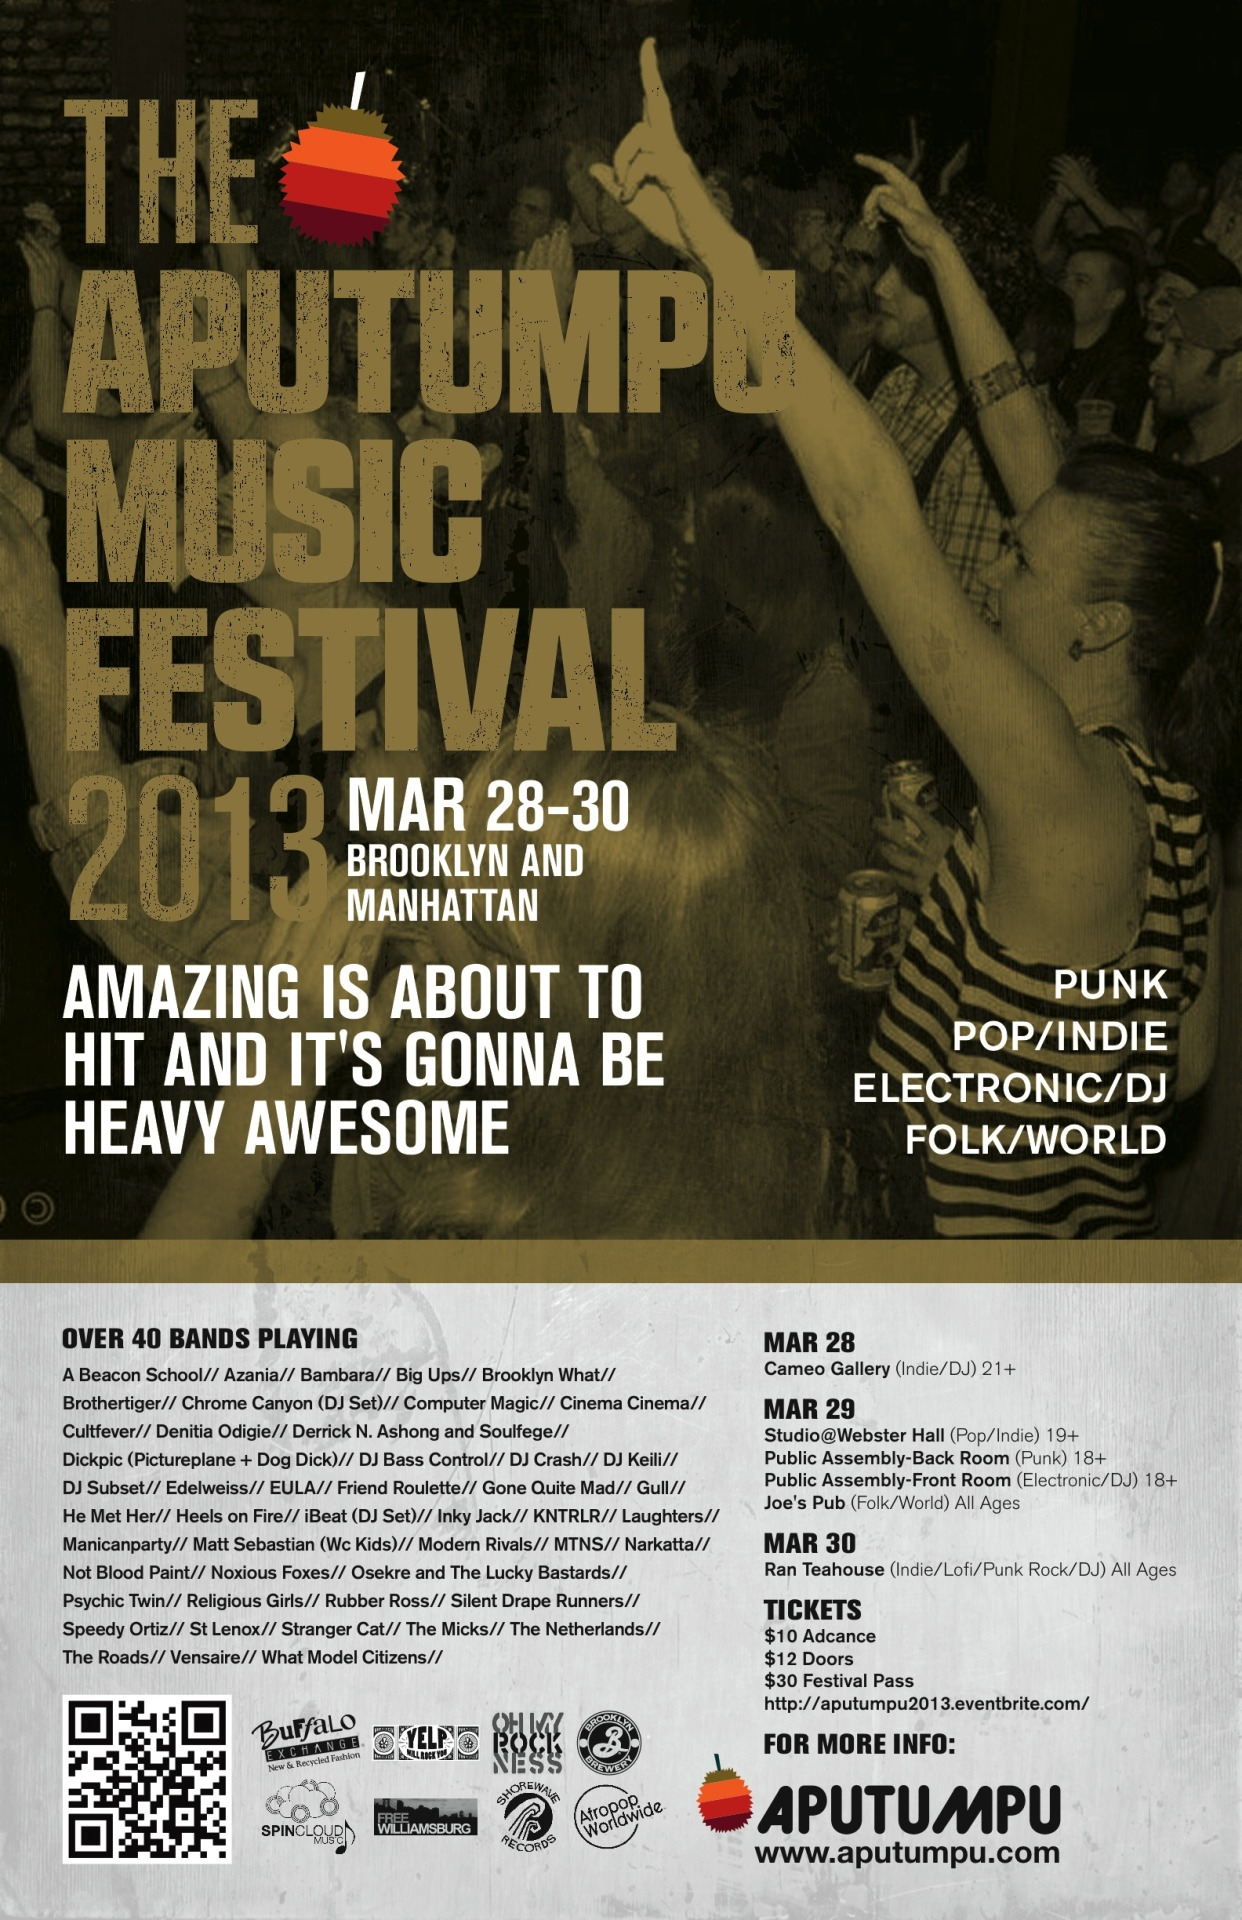 Very excited to be playing the Aputumpu Festival this weekend in NYC.  We're on at 9pm at the Studio at Webster Hall on Friday (19+) and sharing the stage with some local friends (Modern Rivals, Friend Roulette, Manican Party, to name a few). In related news, Aputumpu is partnering with SpinCloud Music on an audio map — unique because it's aimed at music festival-attendees.  After coming back from SXSW, we're selfishly excited that something like this exists.  Festivals are a zoo and it's nice to know someone will hold our hands through them from now on. We're also grateful that our music is a part of the start up endeavor. For the curious, you can read more about what SpinCloud and Aputumpu are up to here. Tickets to our show at the Aputumpu Festival this weekend can be found here.